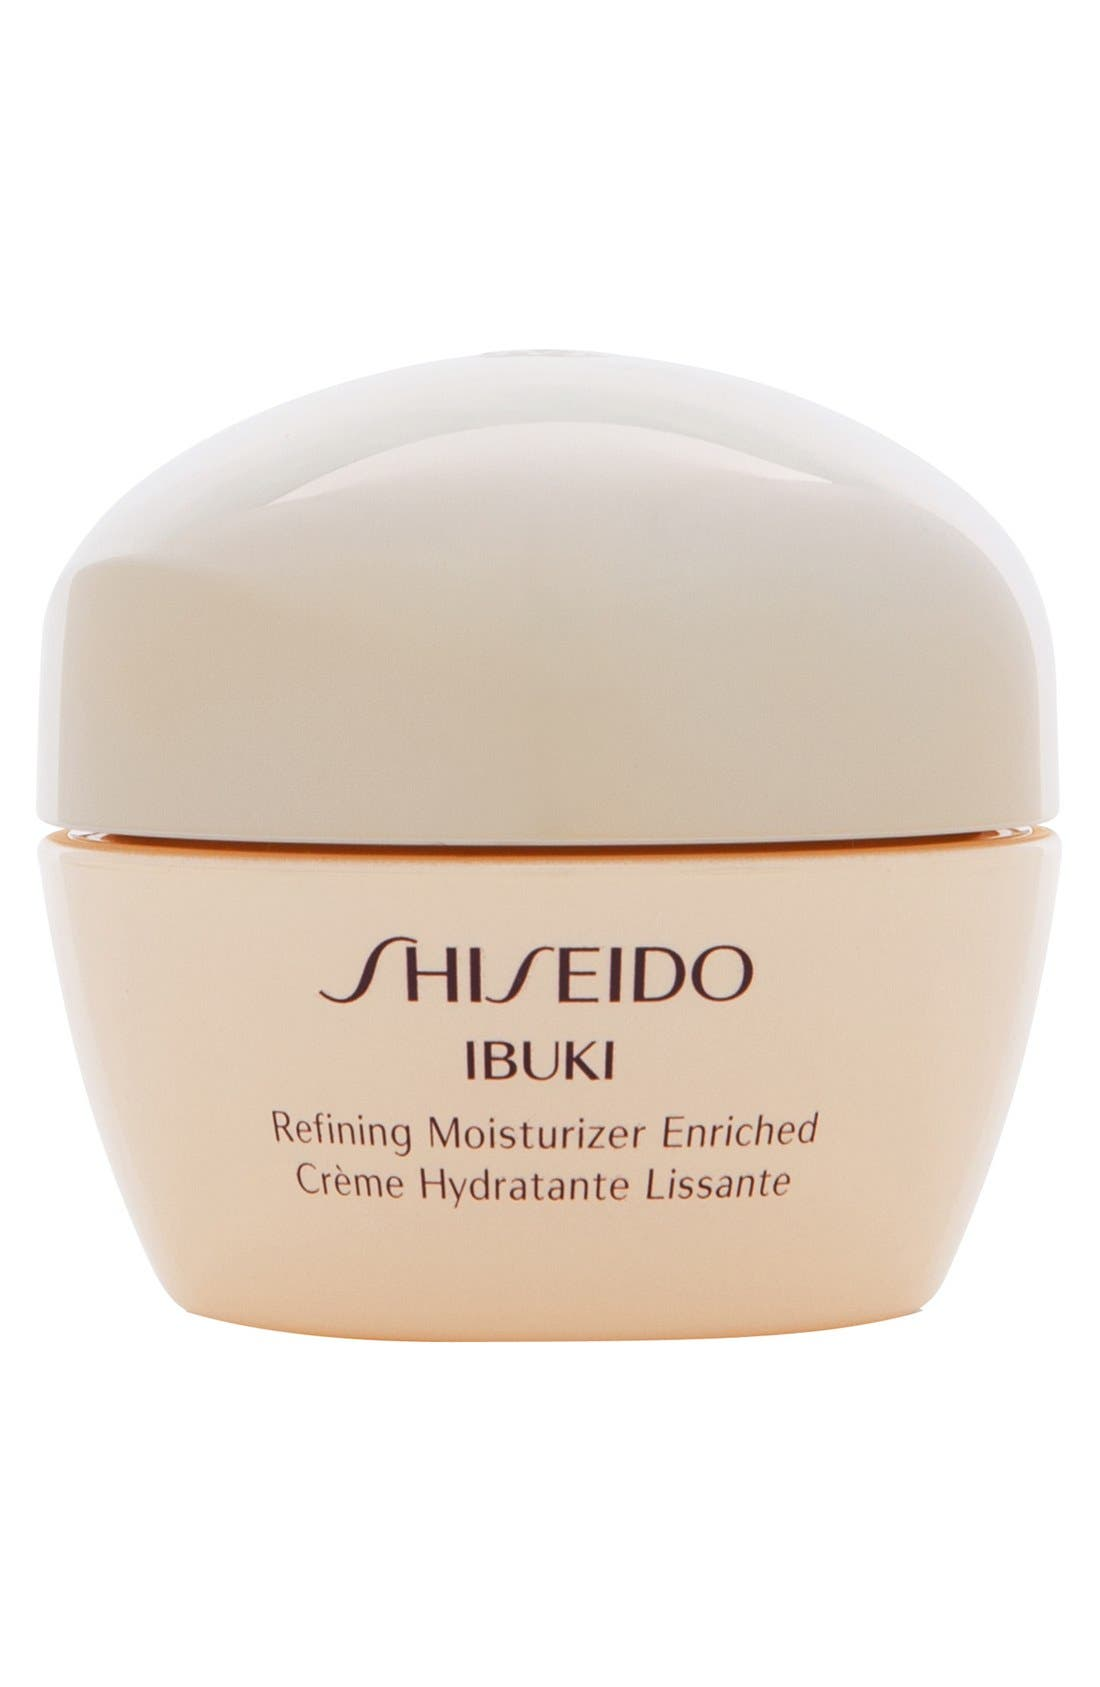 Ibuki Refining Moisturizer Enriched,                             Main thumbnail 1, color,                             NO COLOR